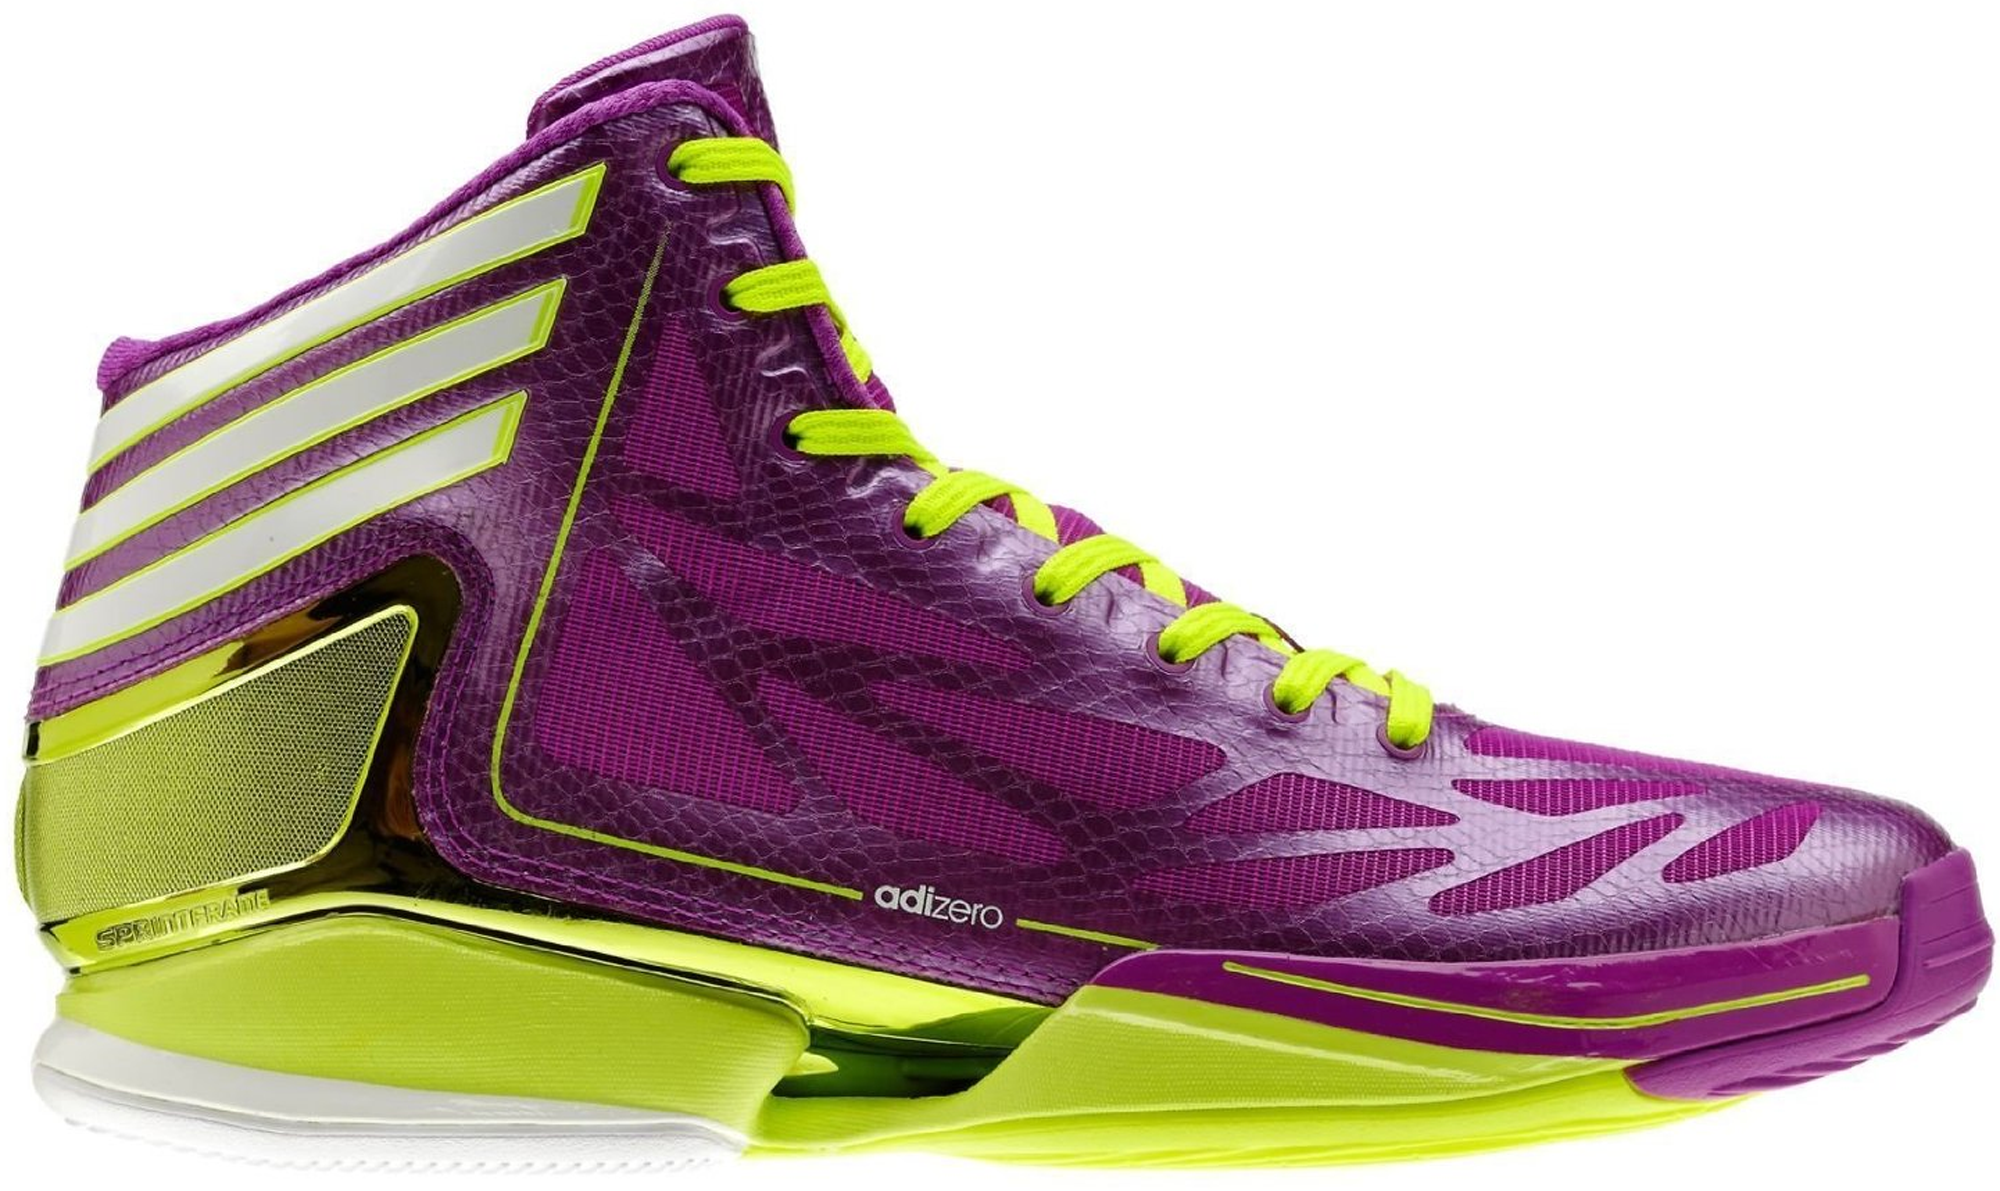 Adidas AdiZero Crazy Light 2 LA